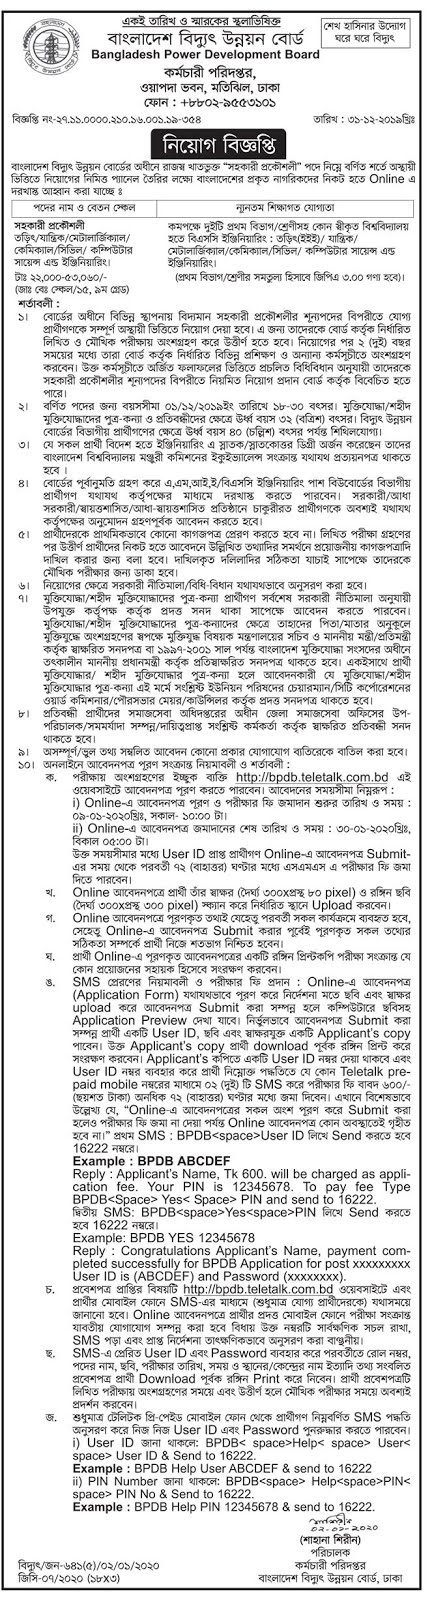 bpdb job circular 2020, bpdb teletalk com bd job circular, bpdb job circular 2020 sub assistant engineer, bpdb job circular 2020 application form, bangladesh power development board job circular 2020, bpdb job circular 2020 assistant engineer, pdb job circular 2019 pdf download, bangladesh bidyut unnayan board job circular 2020,